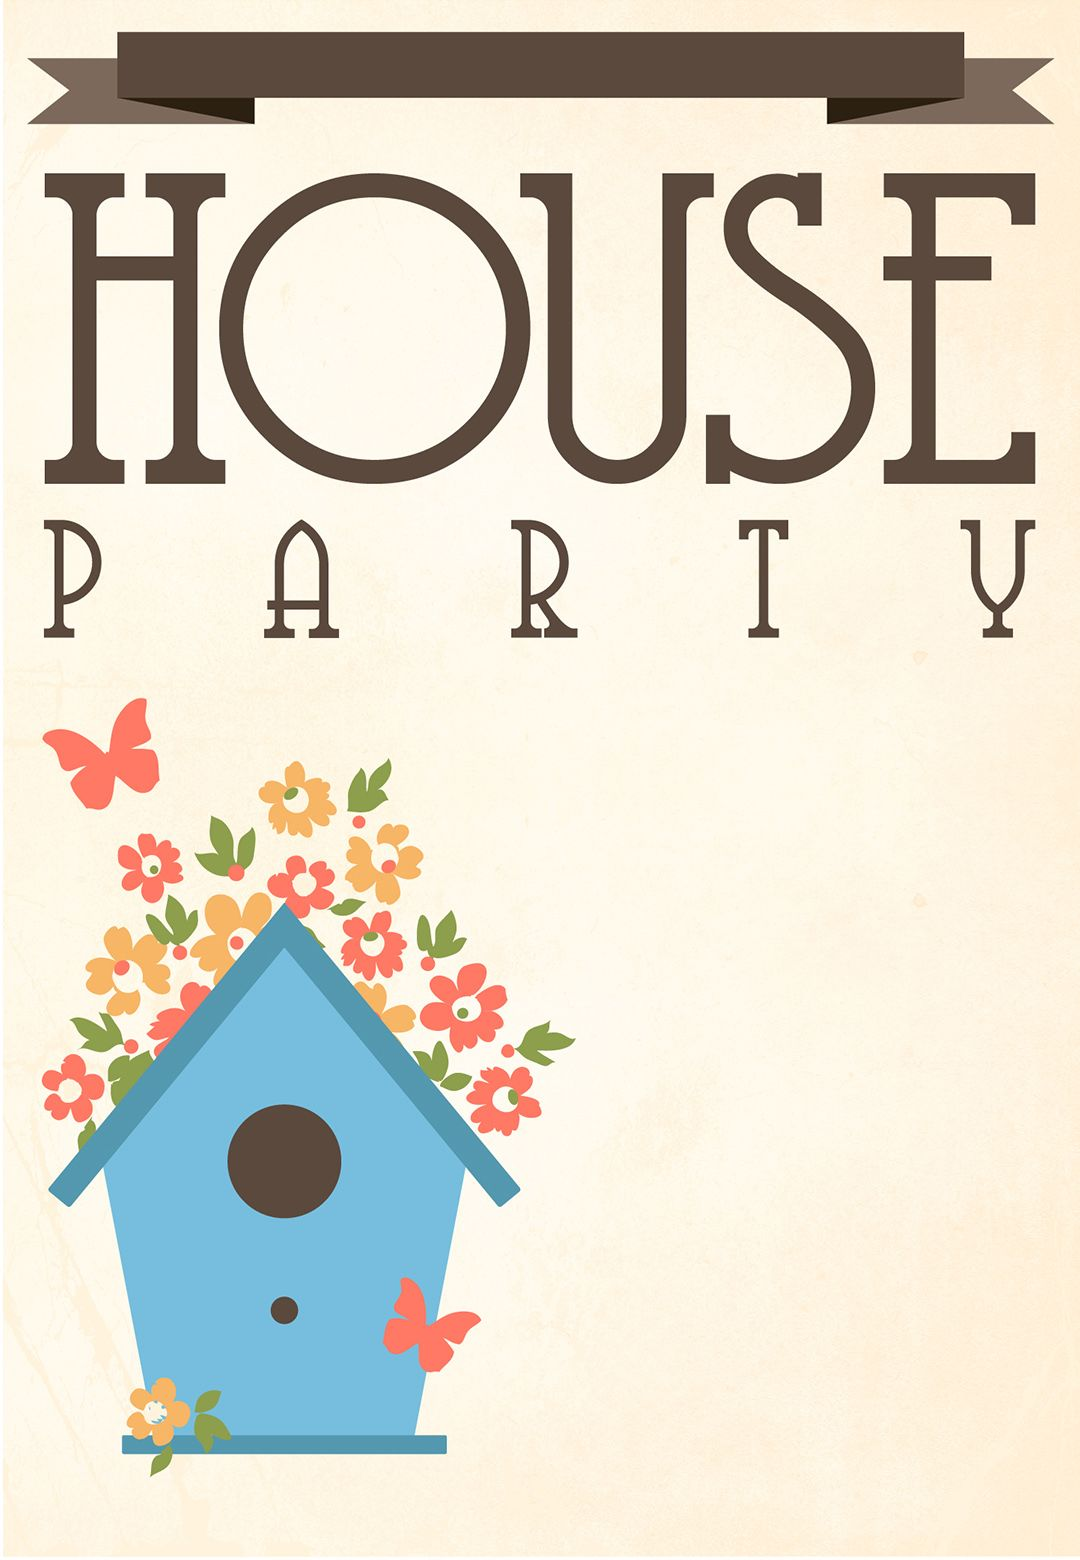 printable house party invitation party invitation templates printable house party invitation